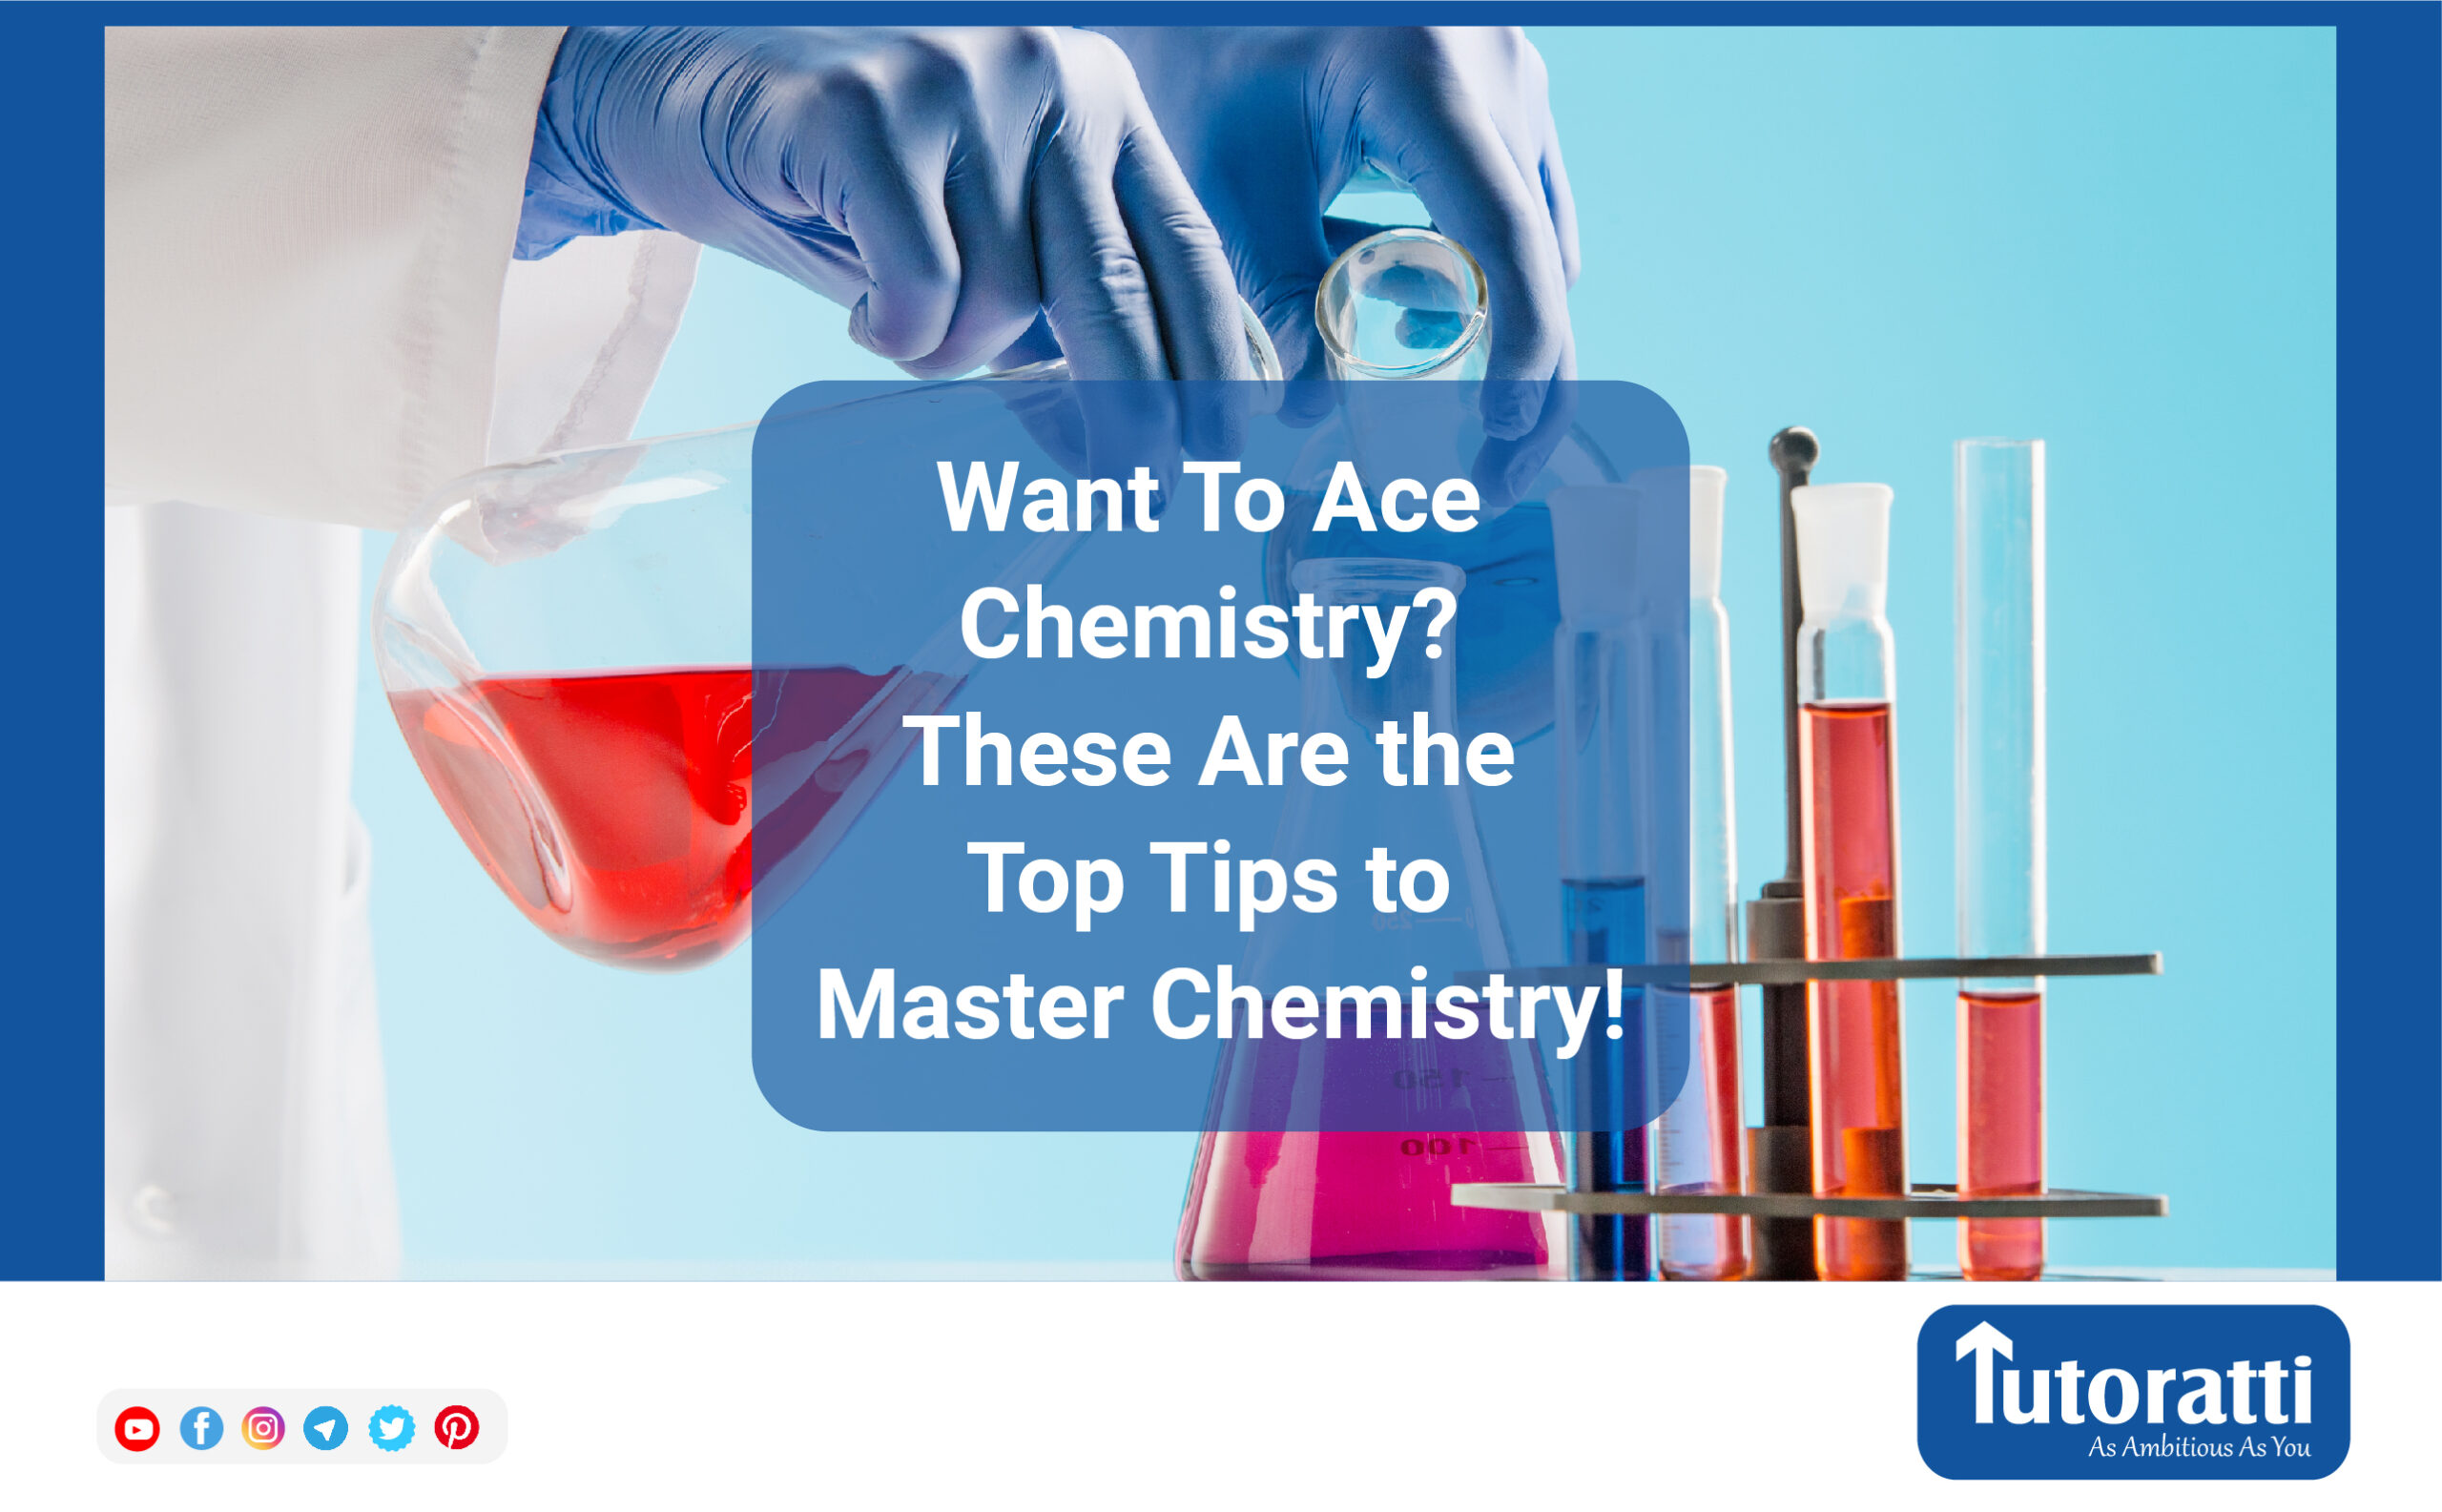 Want To Ace Chemistry? These Are The Top Tips To Master Chemistry!